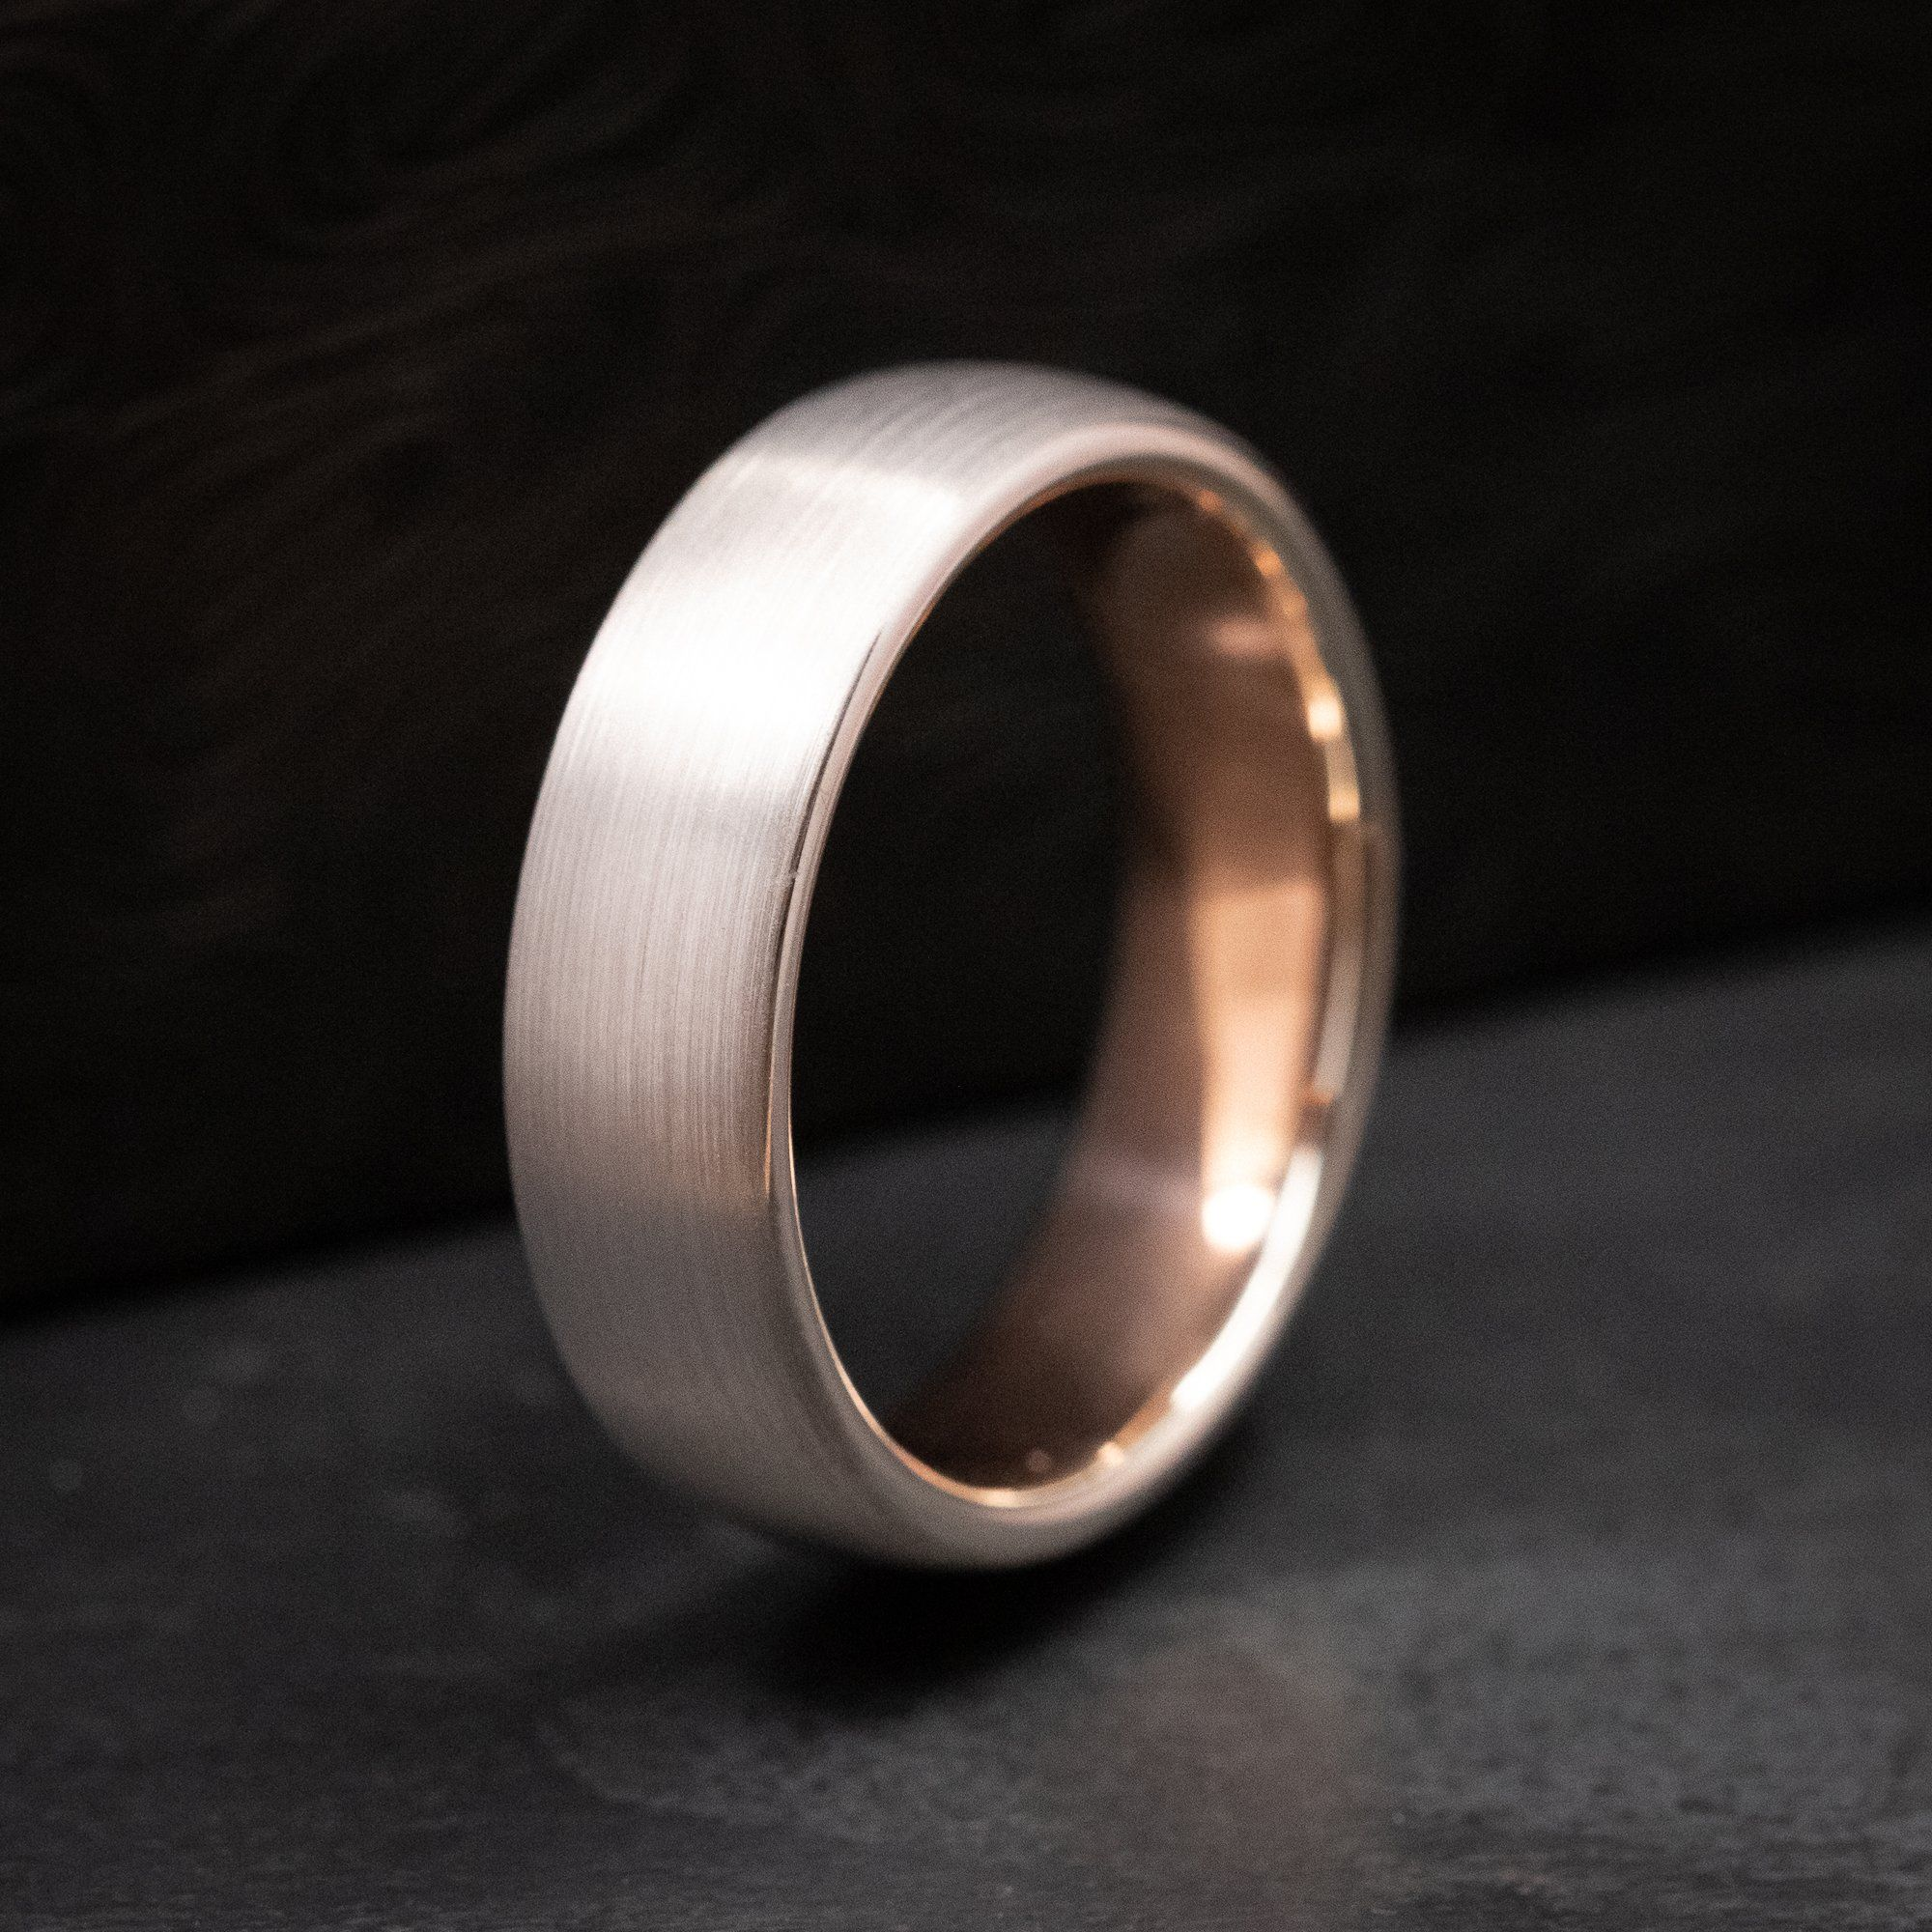 10k White Gold From The Vault Pre Made Ring With 10k Rose Gold Sleeve Size 8 25 White Gold Rings Revolution Jewelry